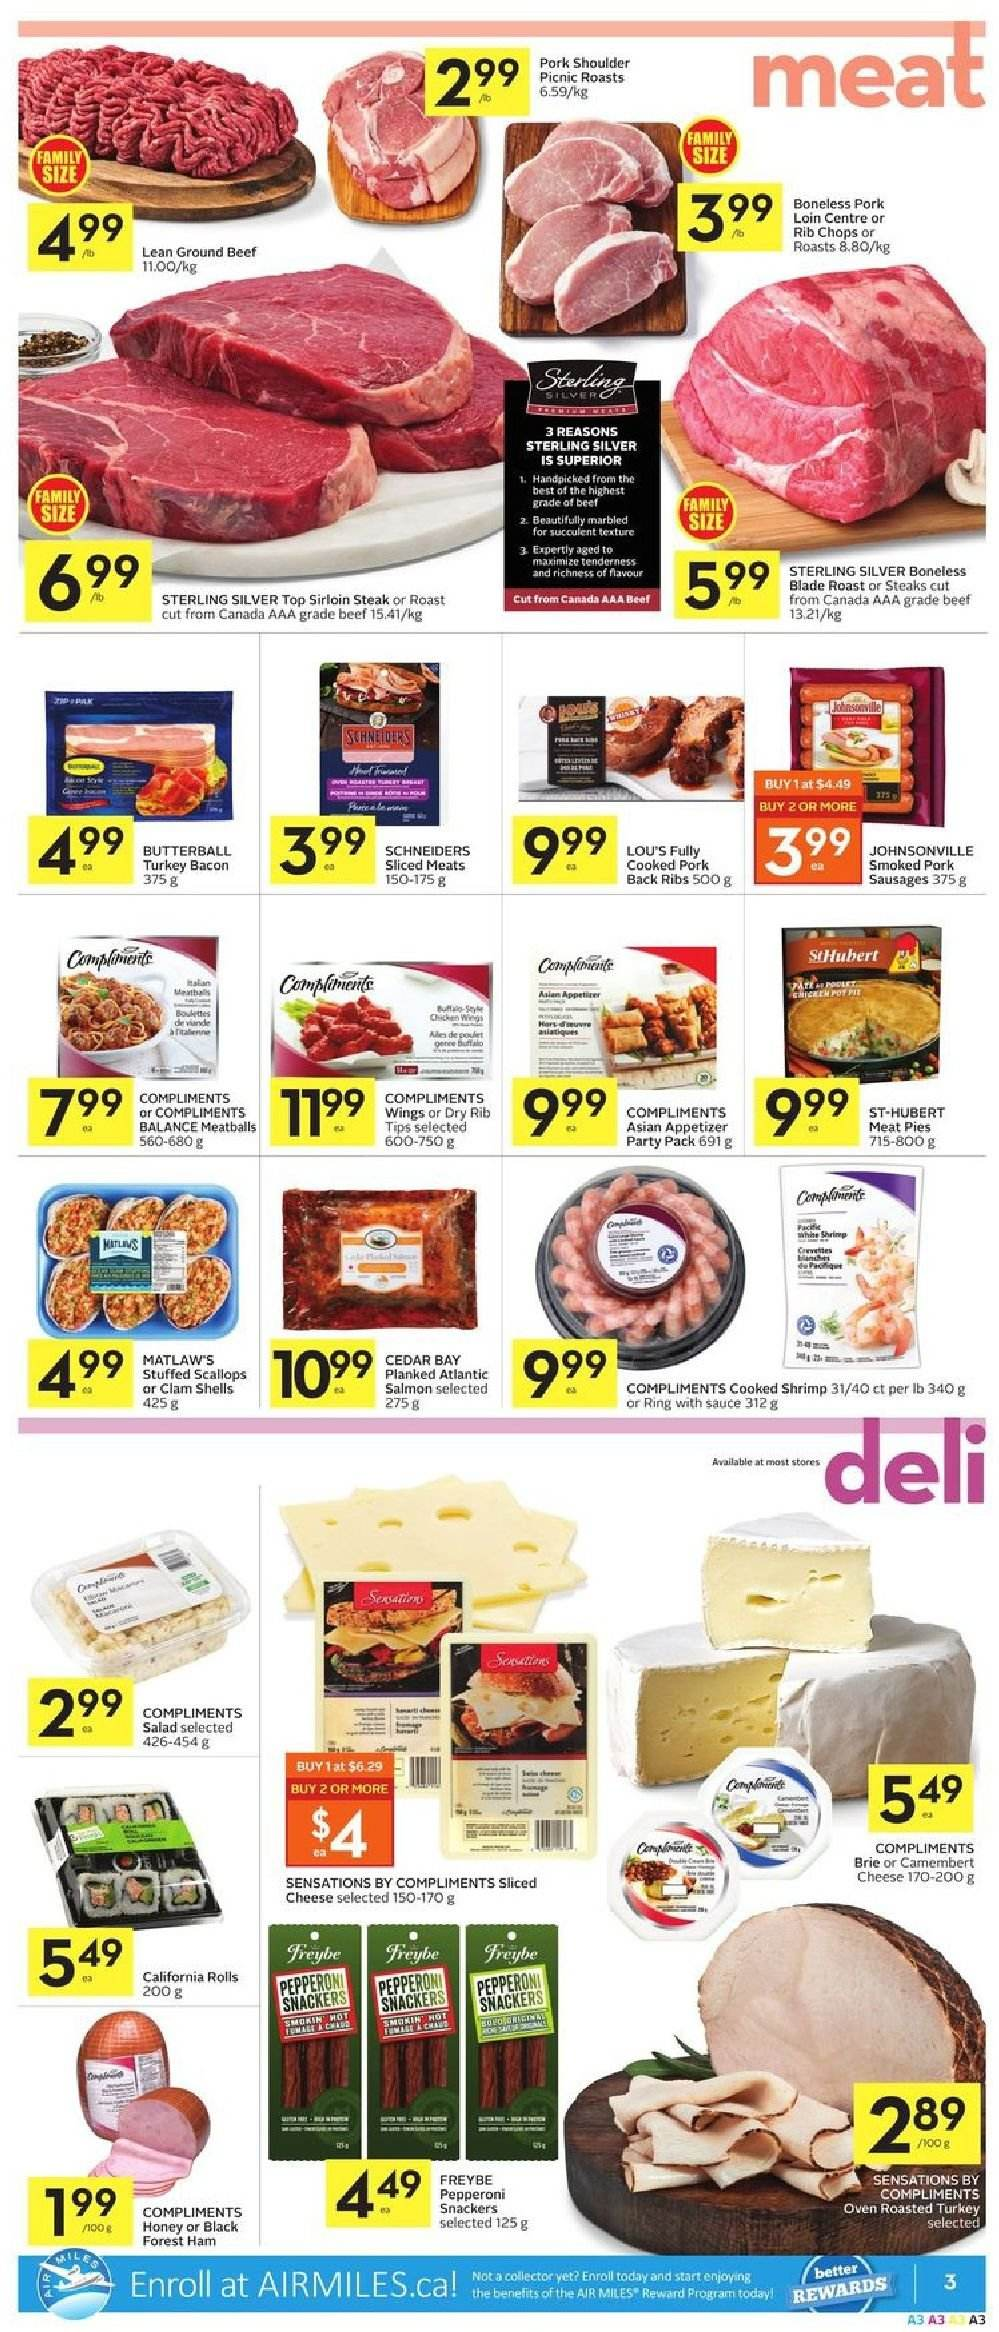 Foodland Flyer  - March 21, 2019 - March 27, 2019. Page 3.